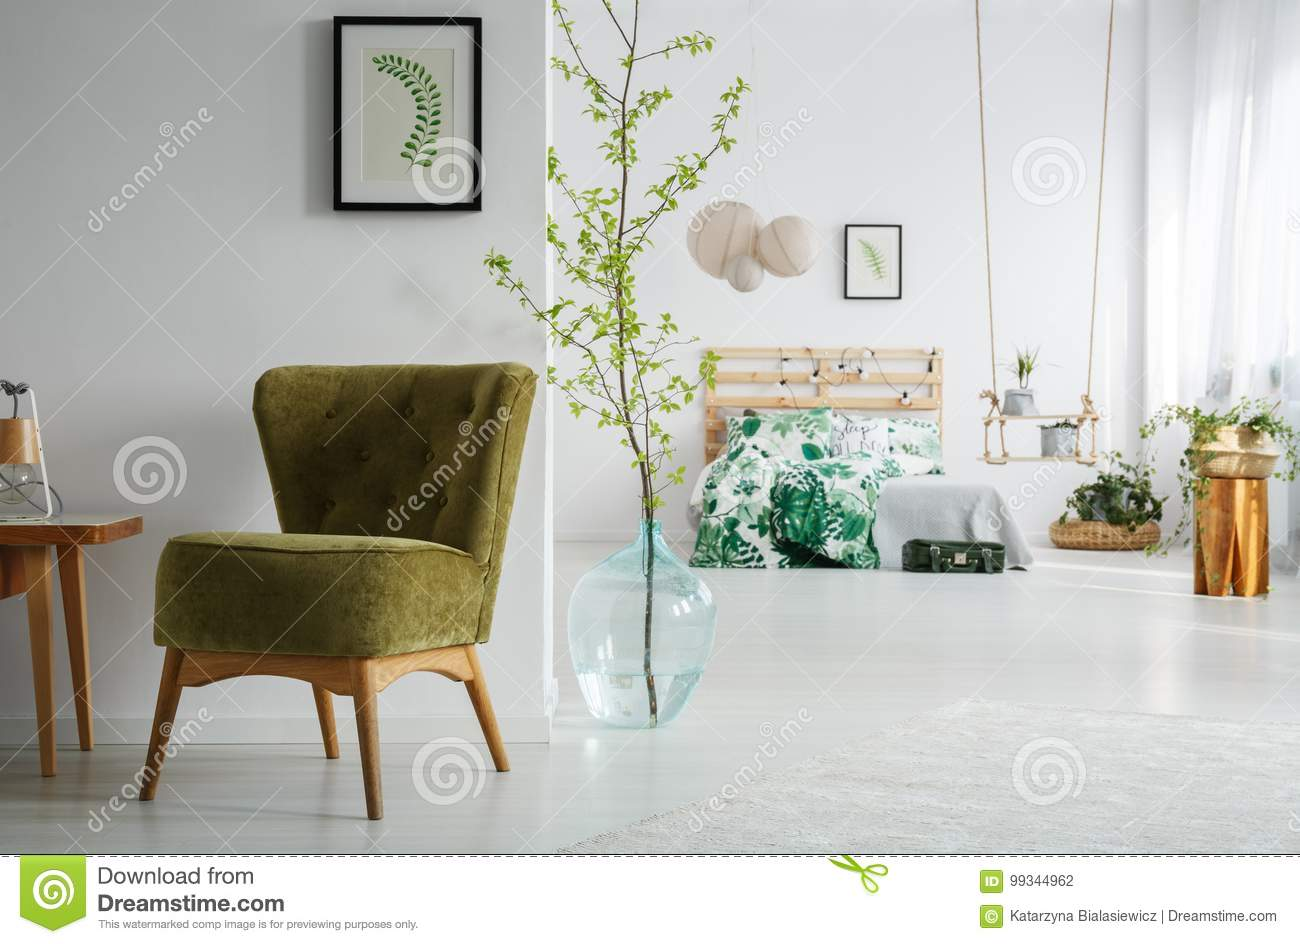 Bedroom With Green Vintage Chair Stock Photo - Image of ...